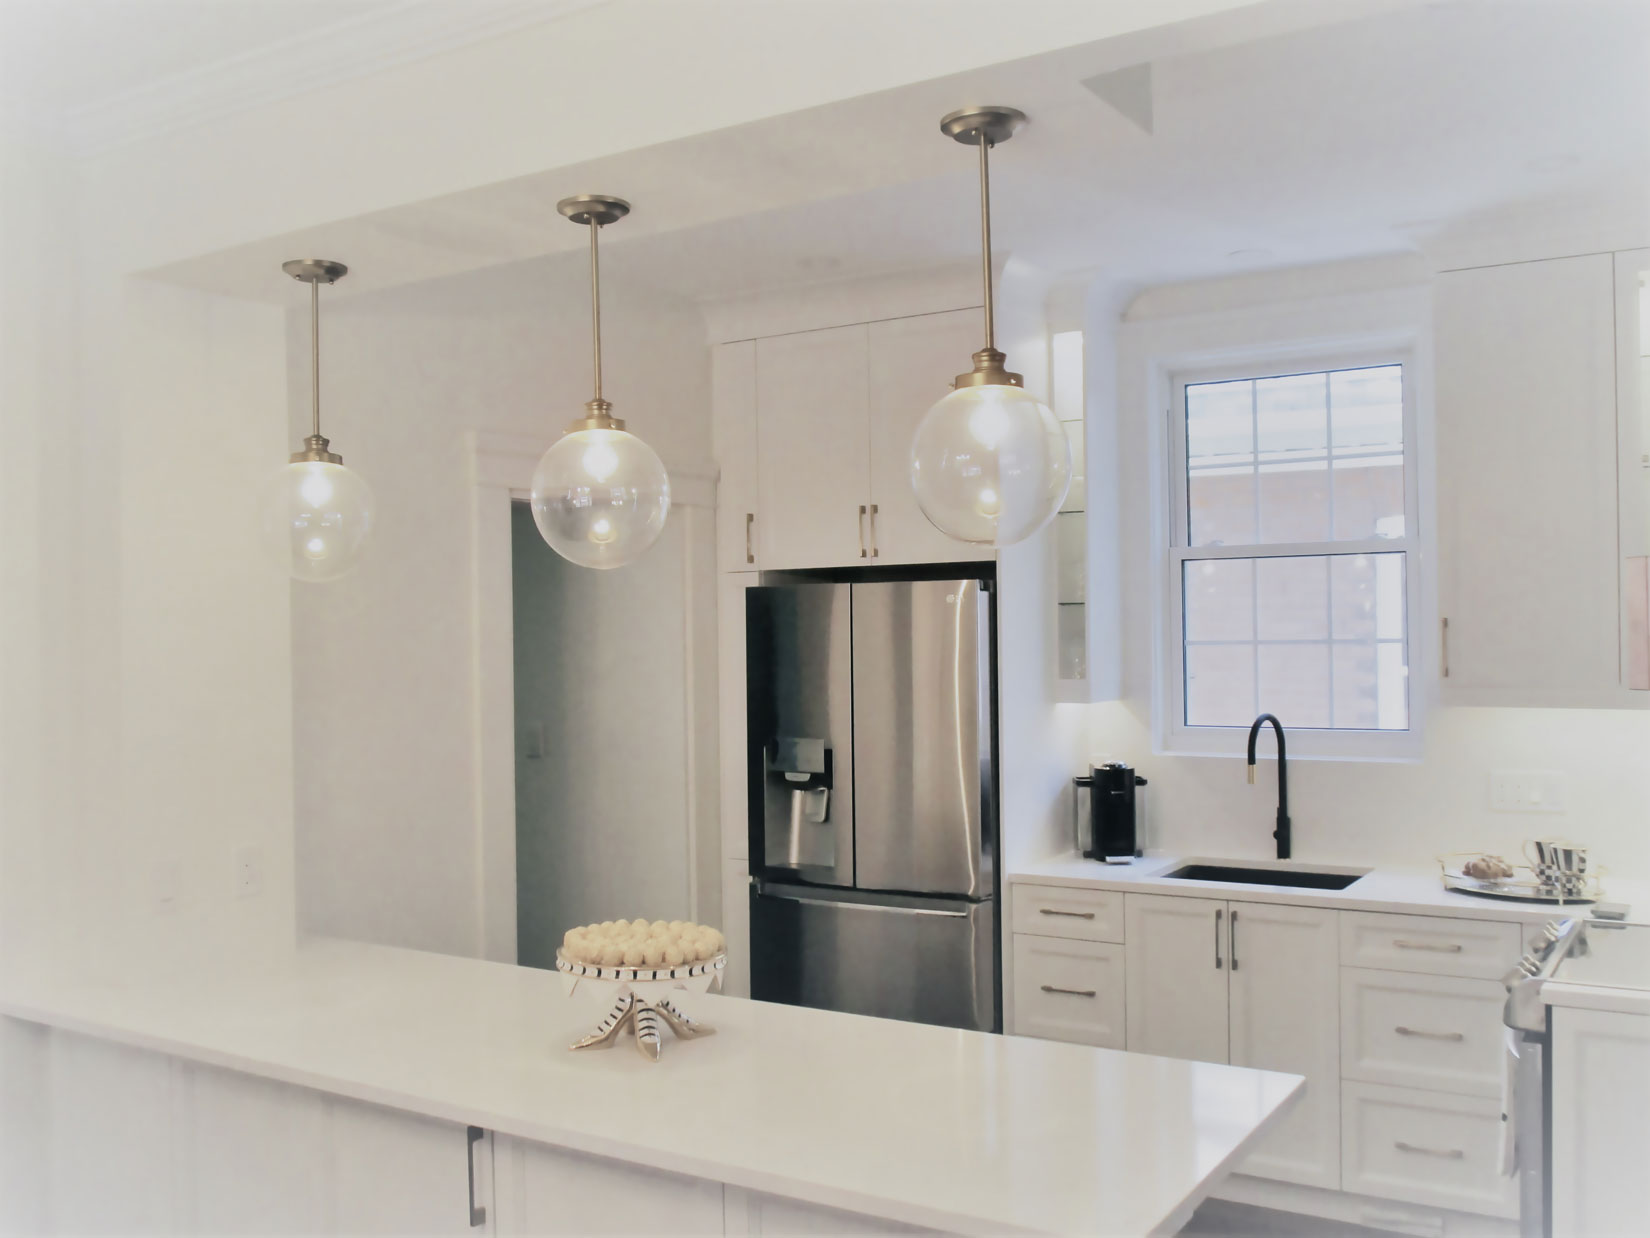 MDF Maui doors in Simply White. Quartz countertops. Contemporary pulls in gold.